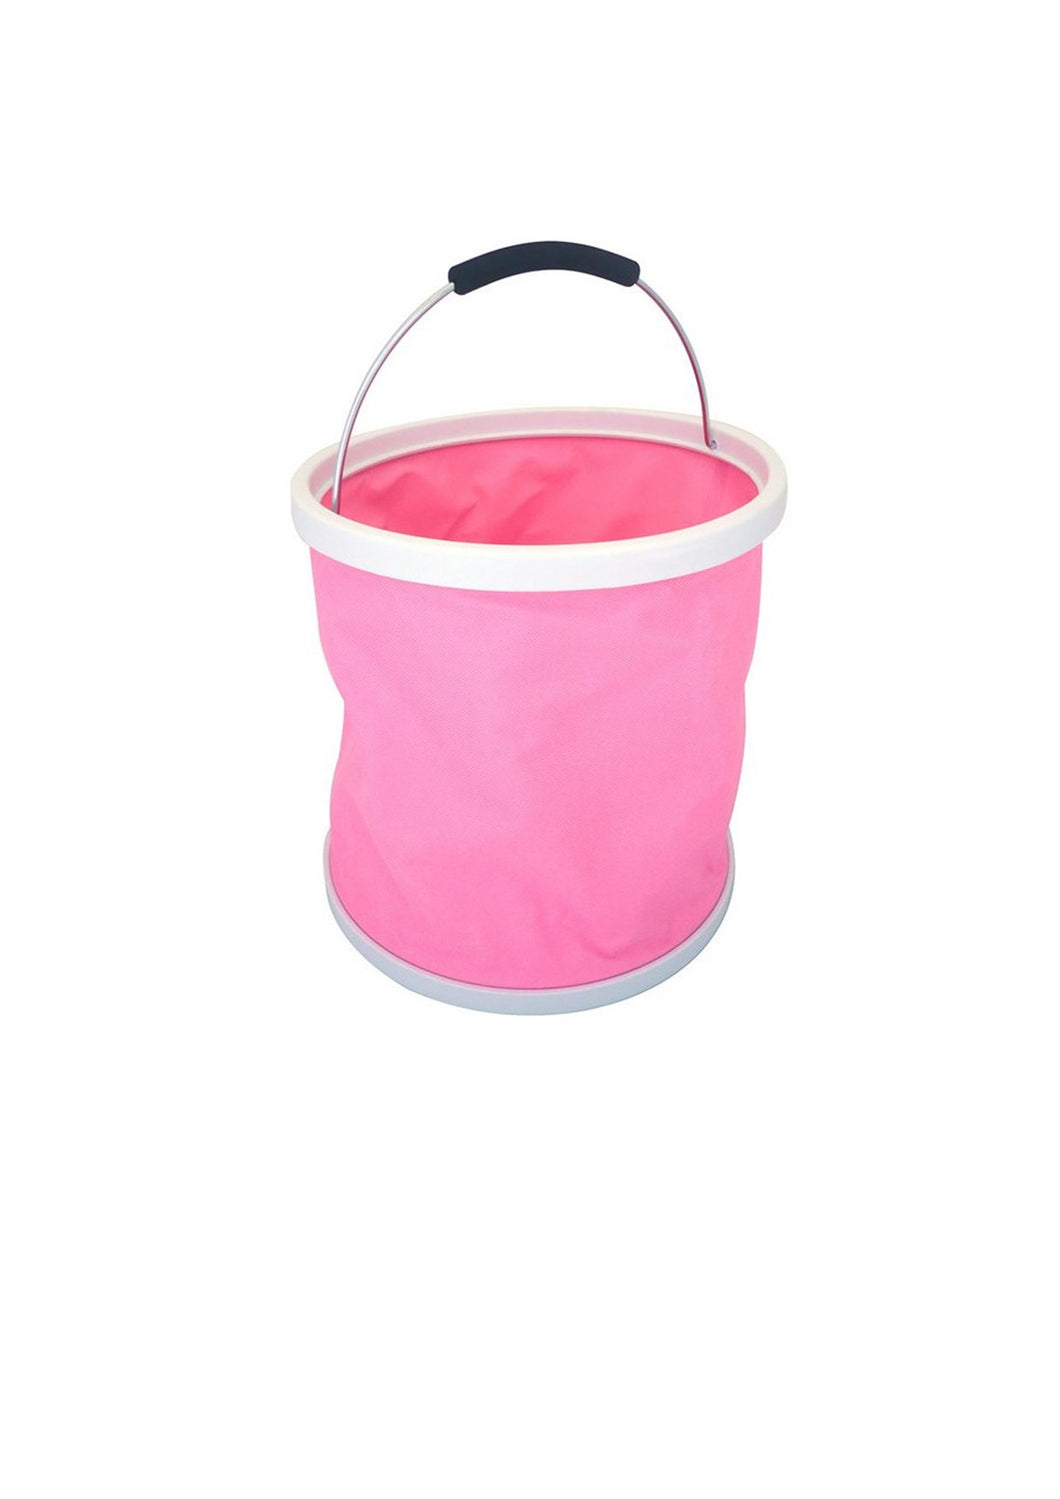 Bucket in a Bag - Pink